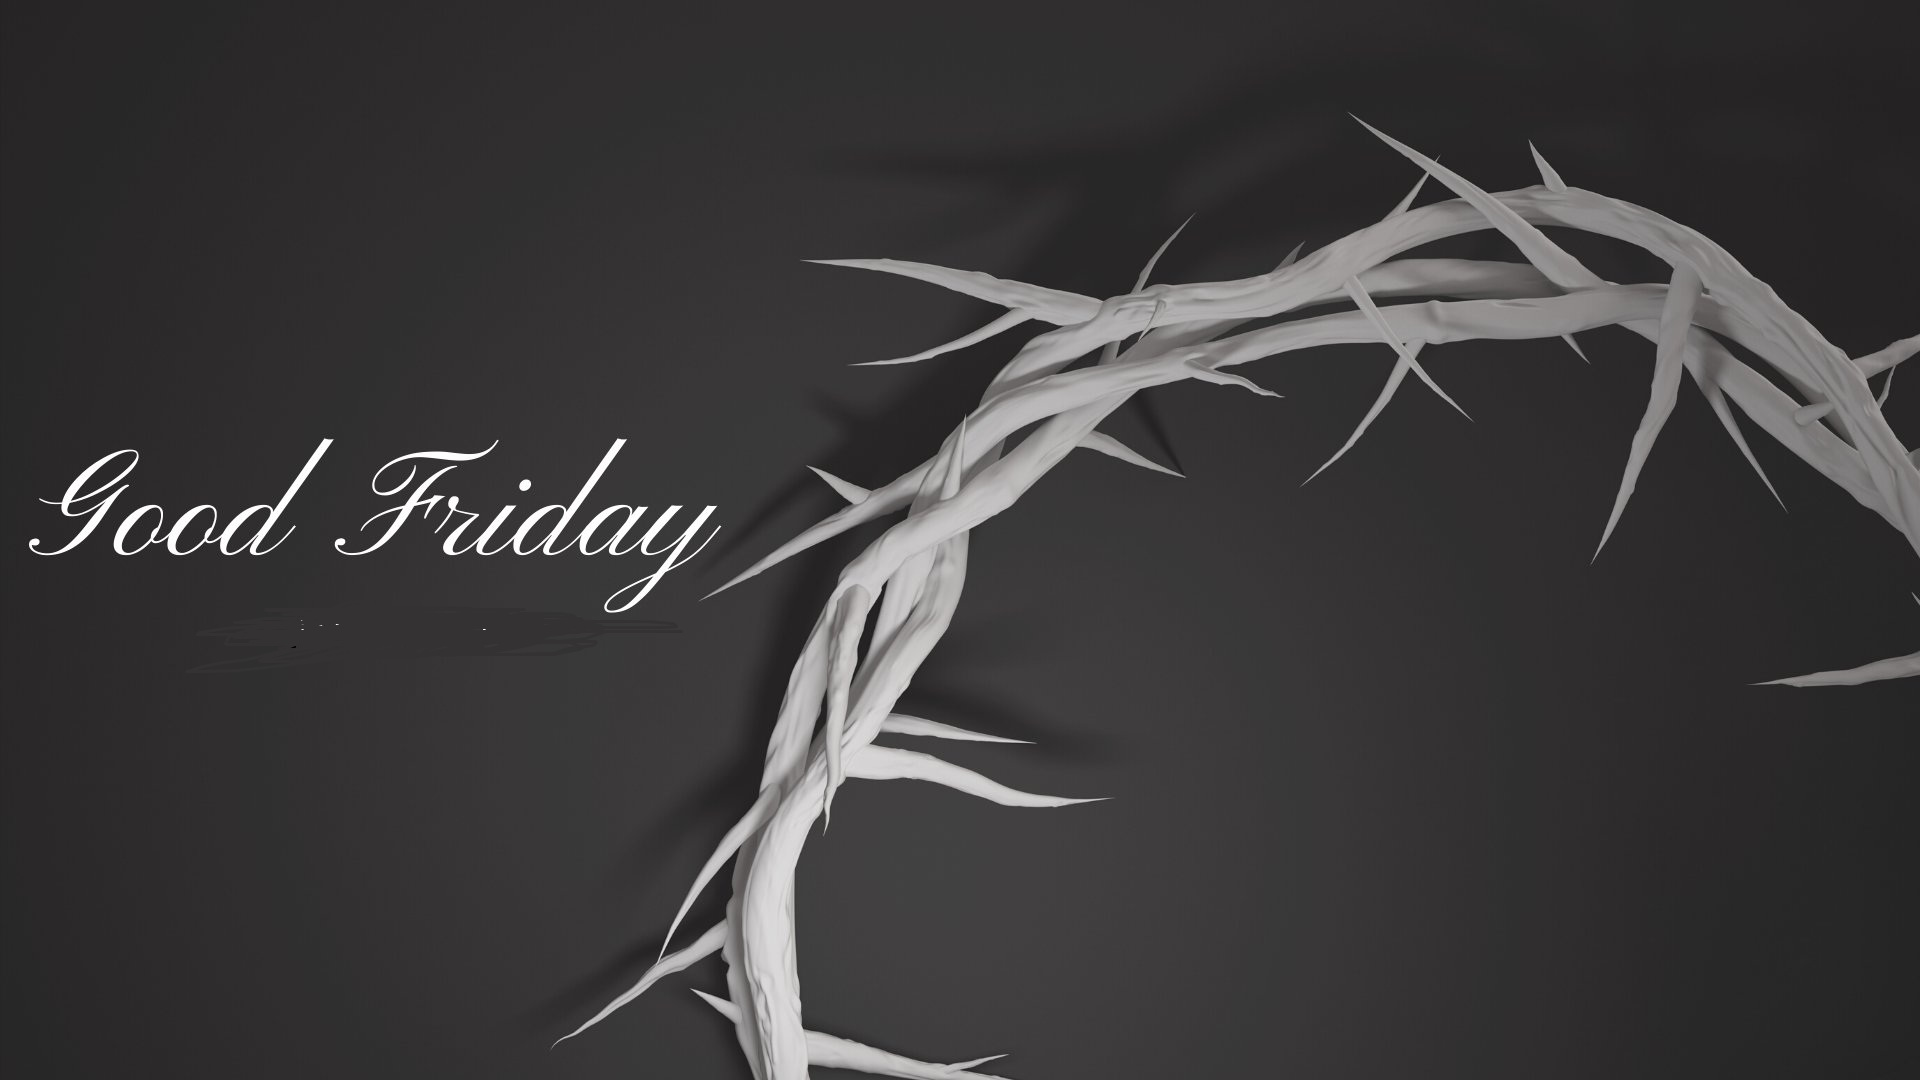 Good Friday 2020  SMS, Message, Wishes, Quotes, Status